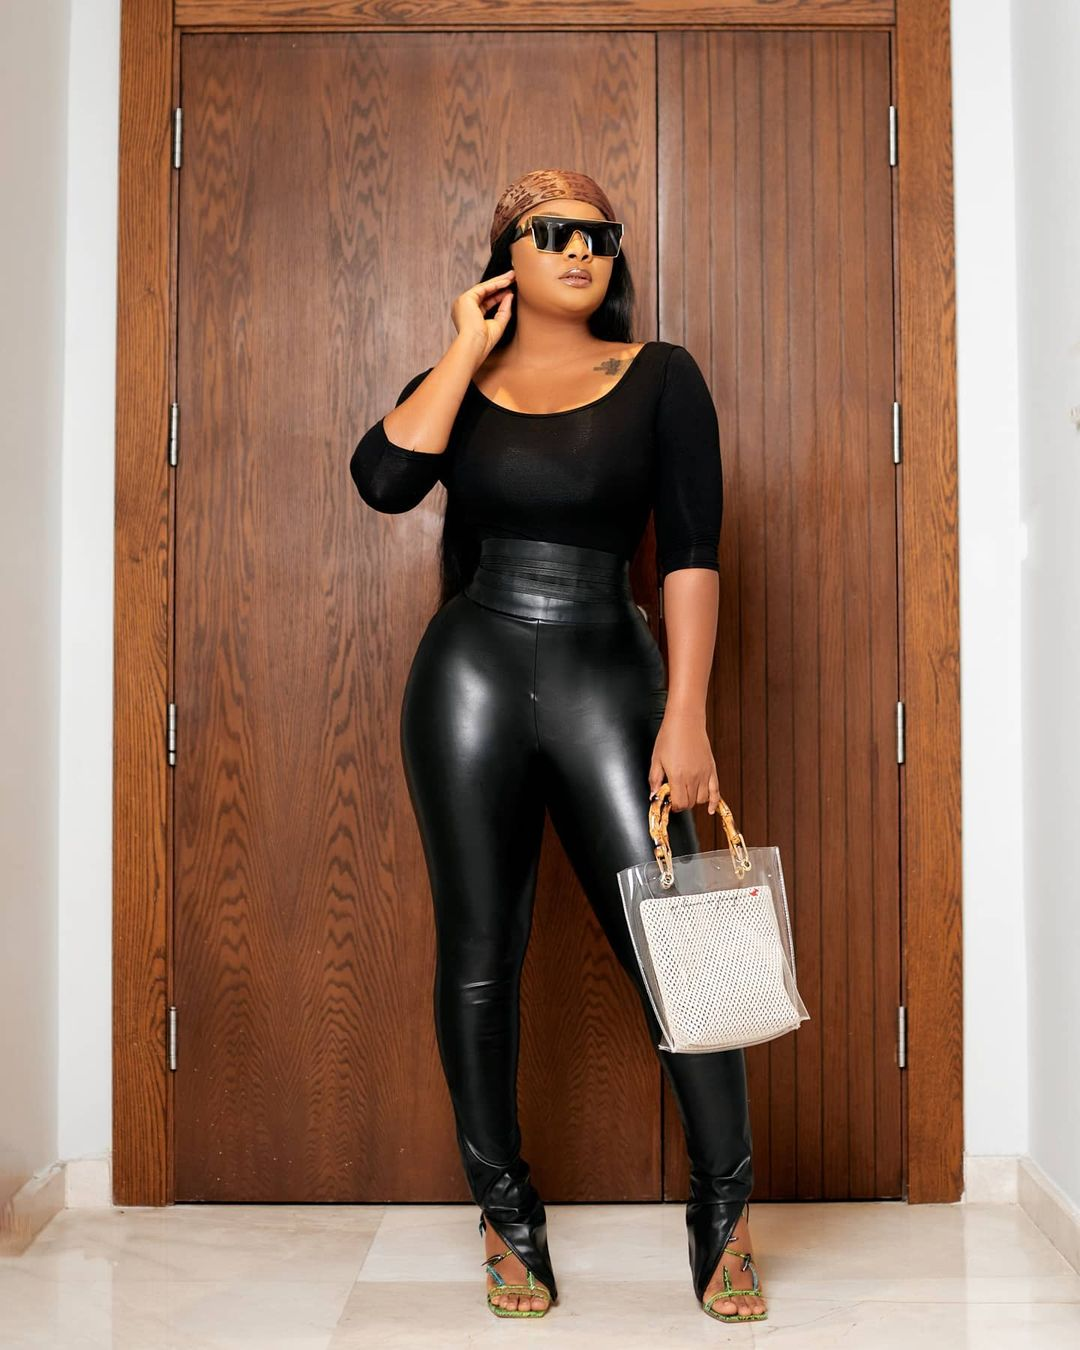 Bimbo Ademoye Keeps It Less Dramatic In Black